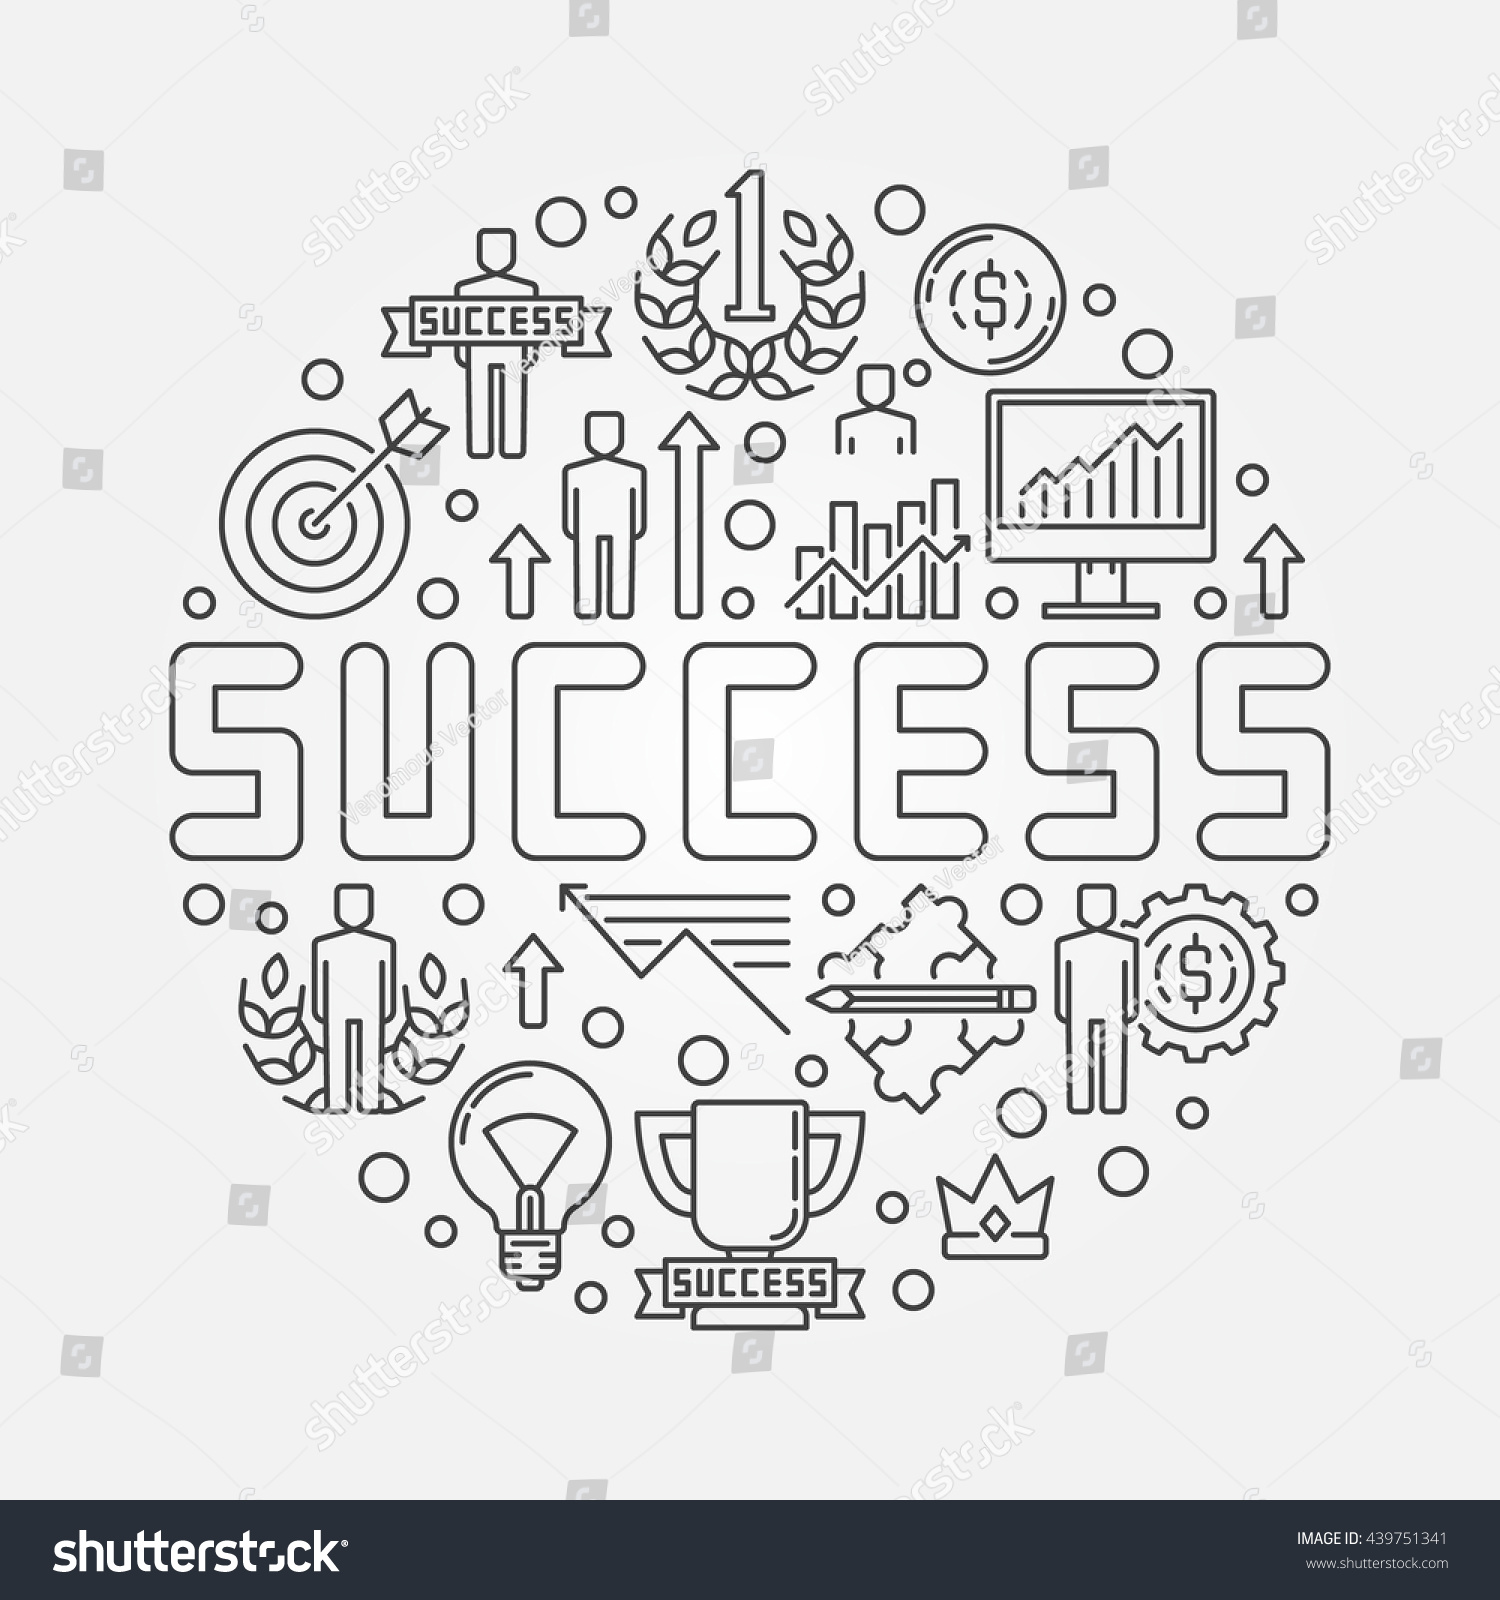 Success Concept Illustration Vector Round Linear Stock ...